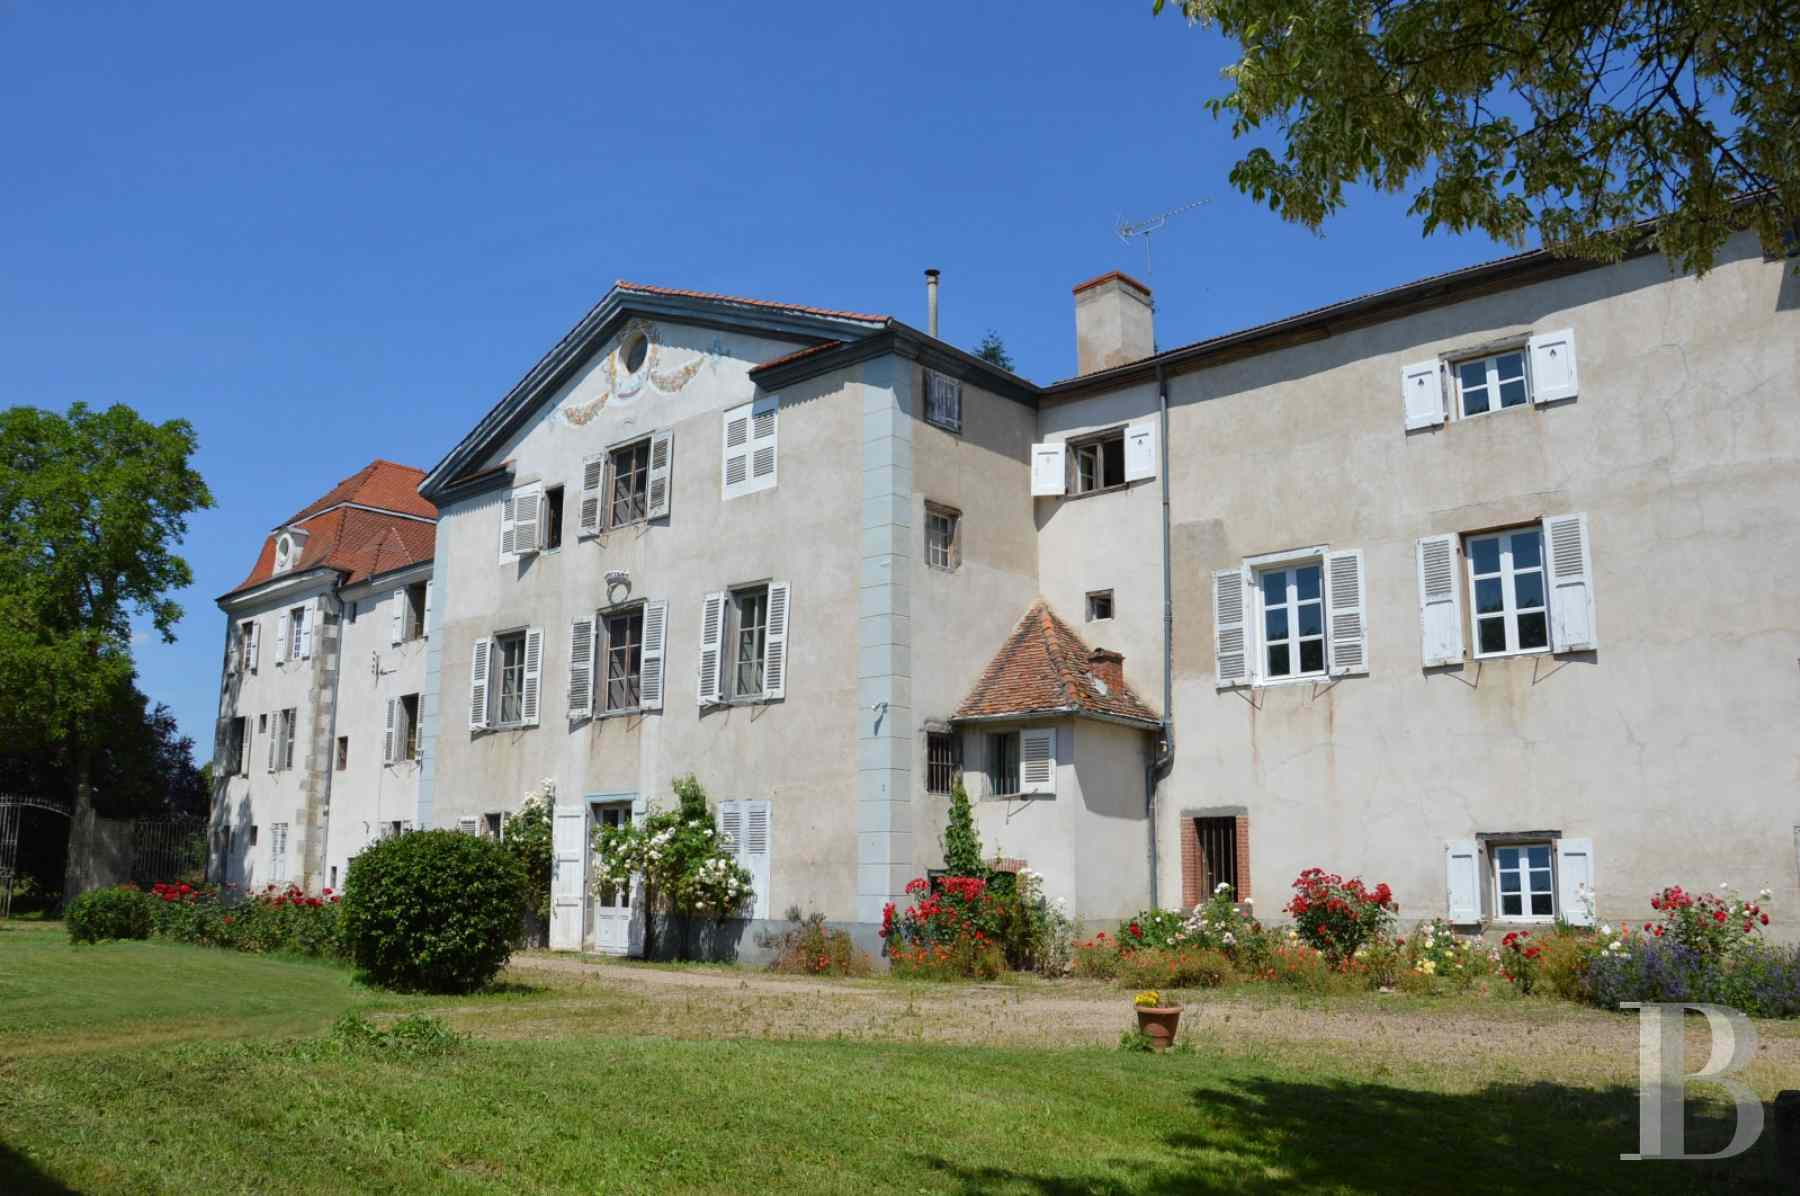 chateaux for sale France rhones alps liste chateau - 1 zoom